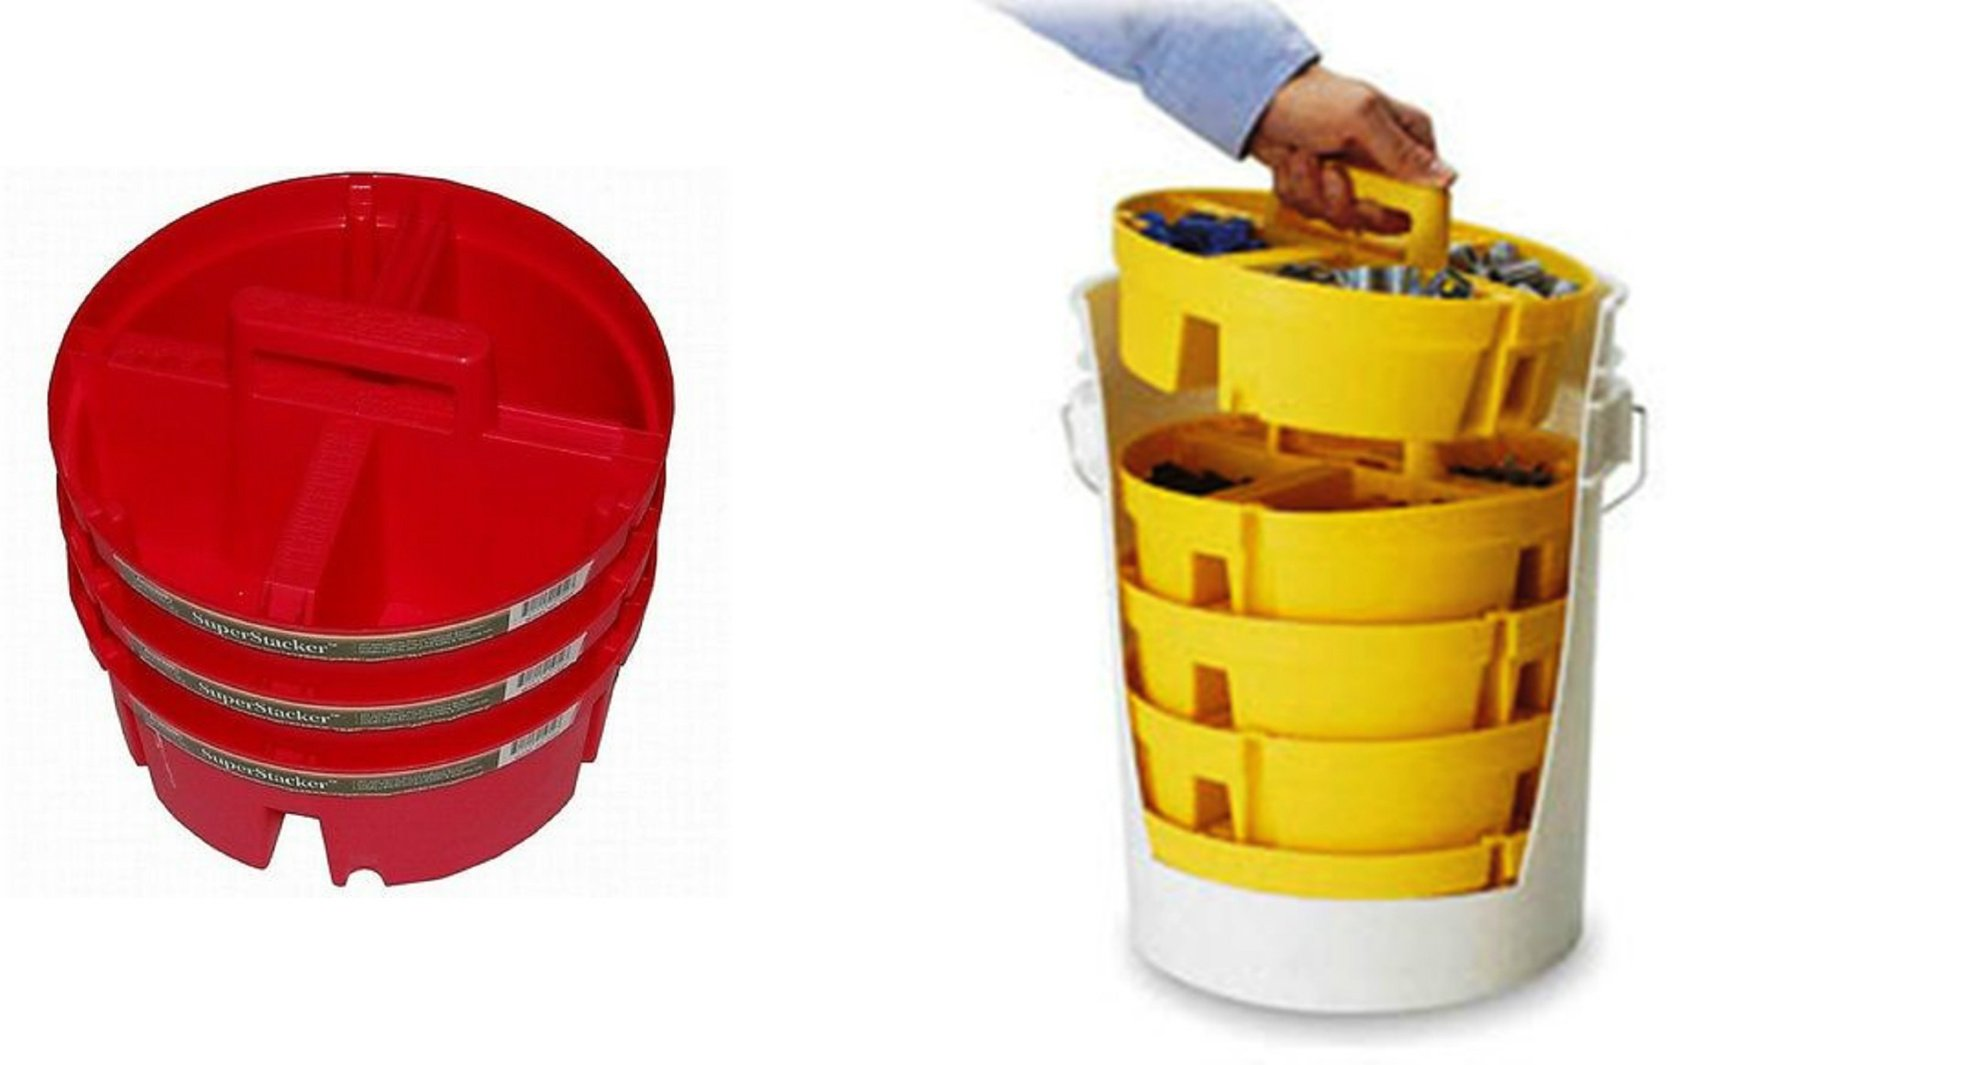 Set of 3 Bucket Boss Red Extra Deep Superstacker + 4 Yellow Bucket Stackers - 2 Pails organization Kit - For 5 Gal Buckets